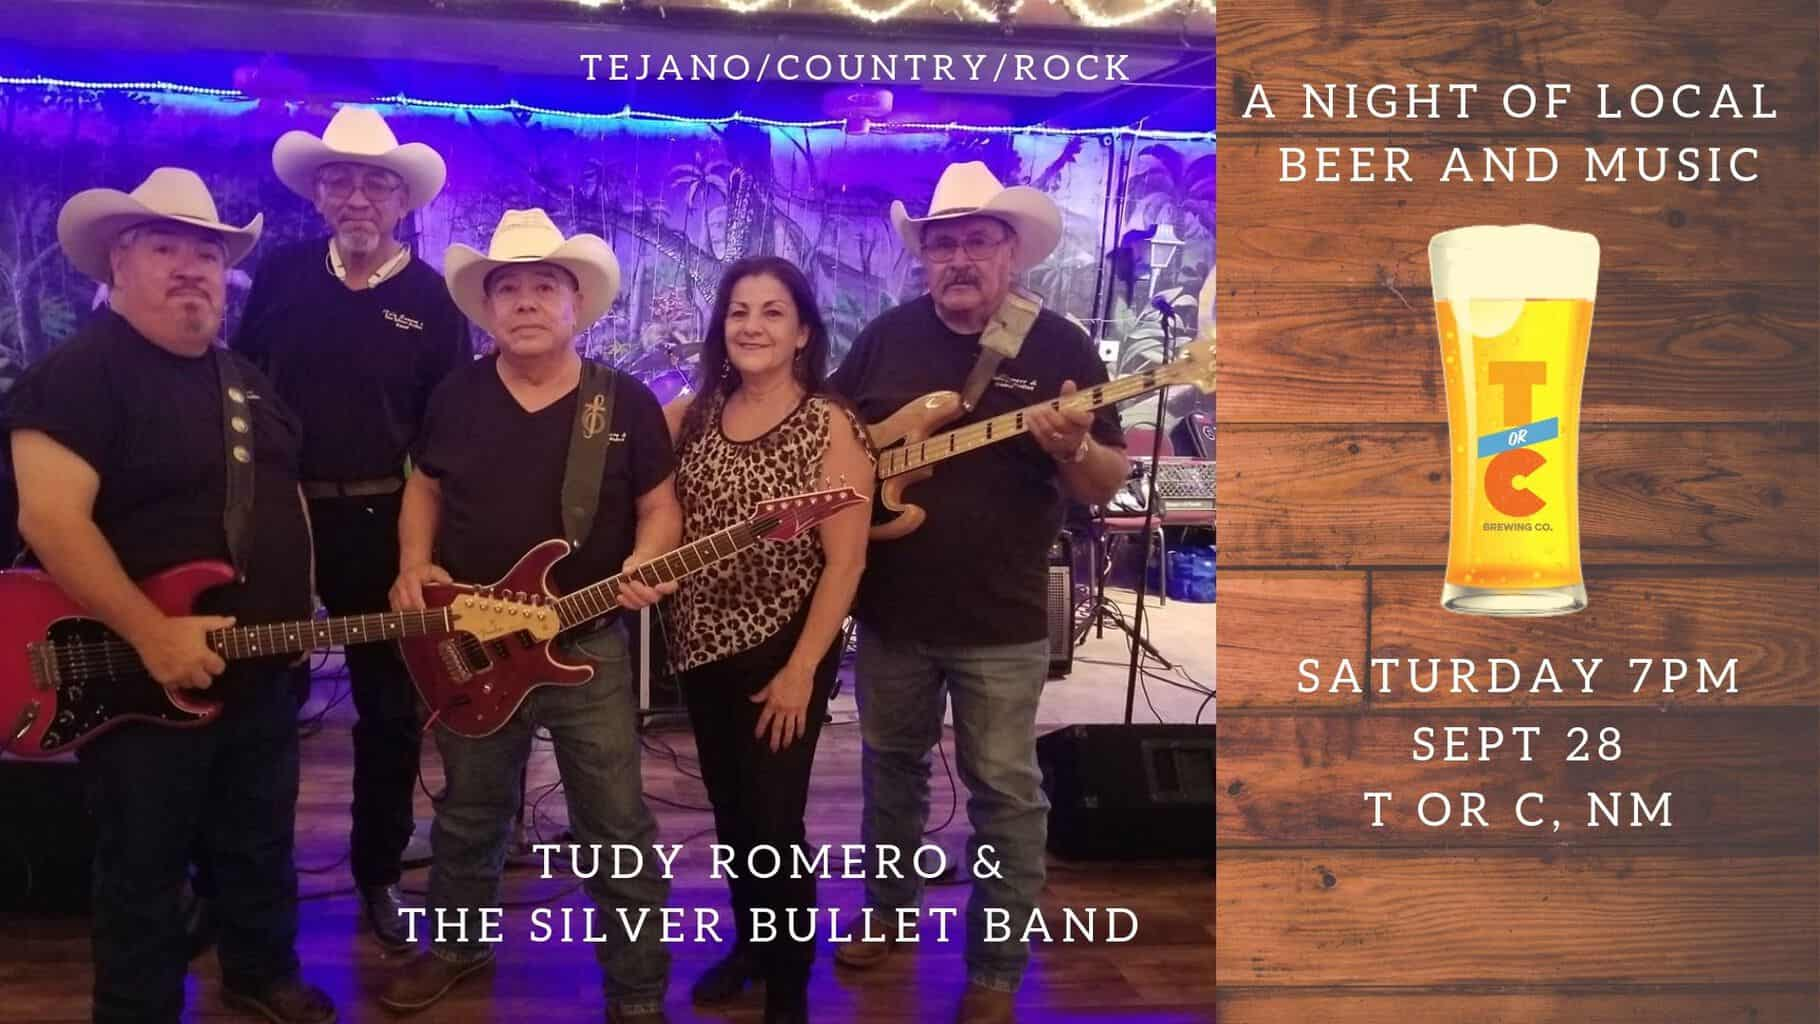 Tudy Romero & The Silver Bullets